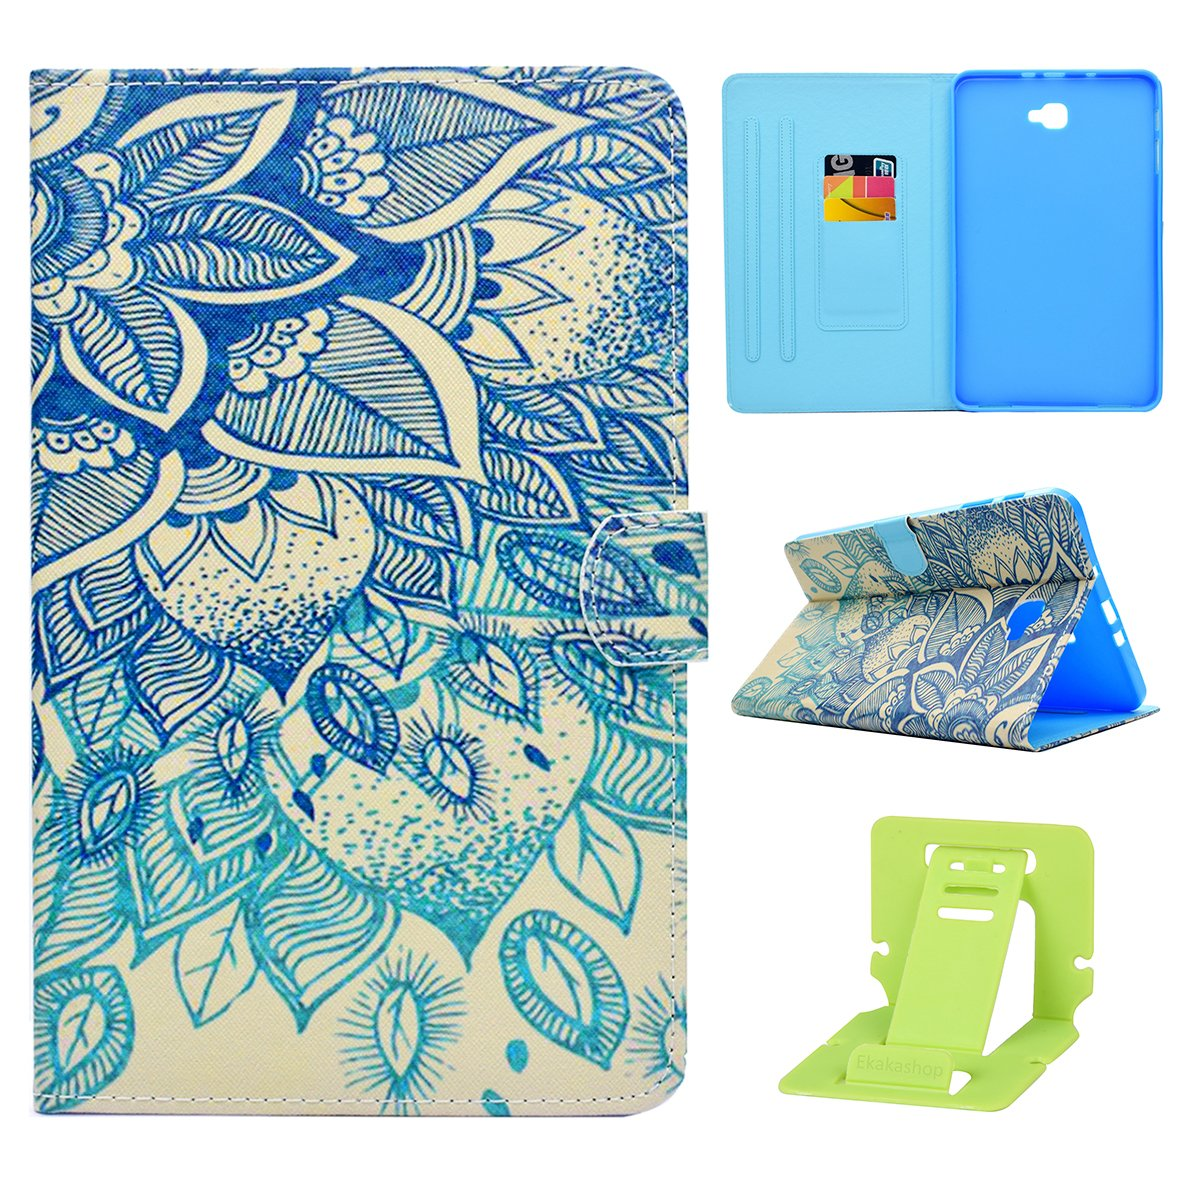 "Custodia Progettato per Samsung Galaxy Tab A 10.1, Galaxy Tab A 10.1"" SM-T580N/SM-T585N Cover Portafoglio, Ekakashop Ultra Slim Tavoletta PU Custodia in pelle Colorate Pattern Borsa Wallet Flip Folio Stand Case Cover Custodia per Samsung Galaxy Tab A 10.1"